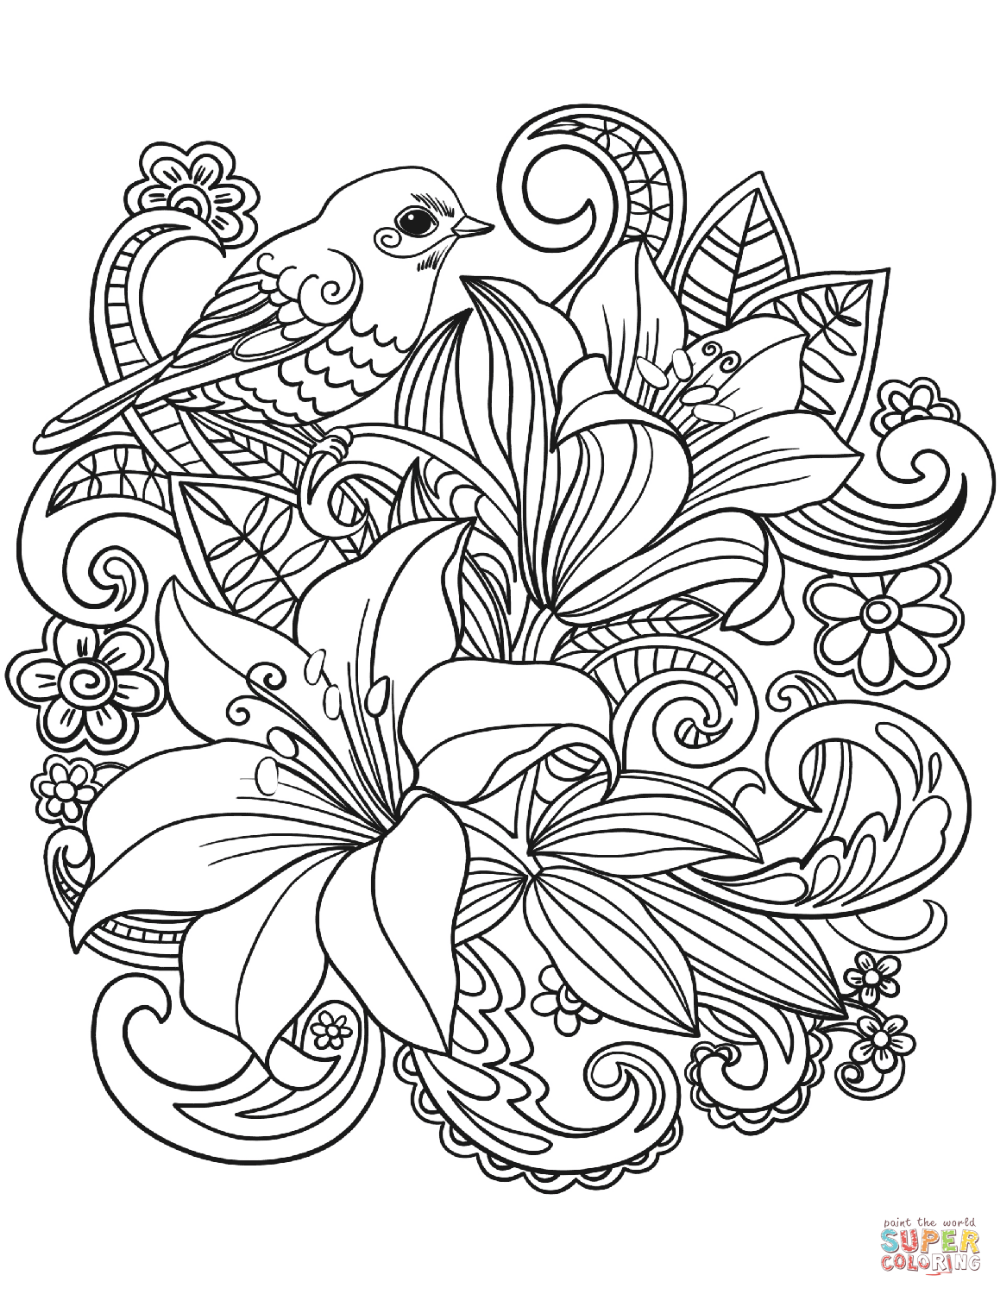 Dibujo De Alondra Y Flores Para Colorear Dibujos Para Colorear Imprimir Gratis Printable Flower Coloring Pages Mandala Coloring Pages Flower Coloring Sheets